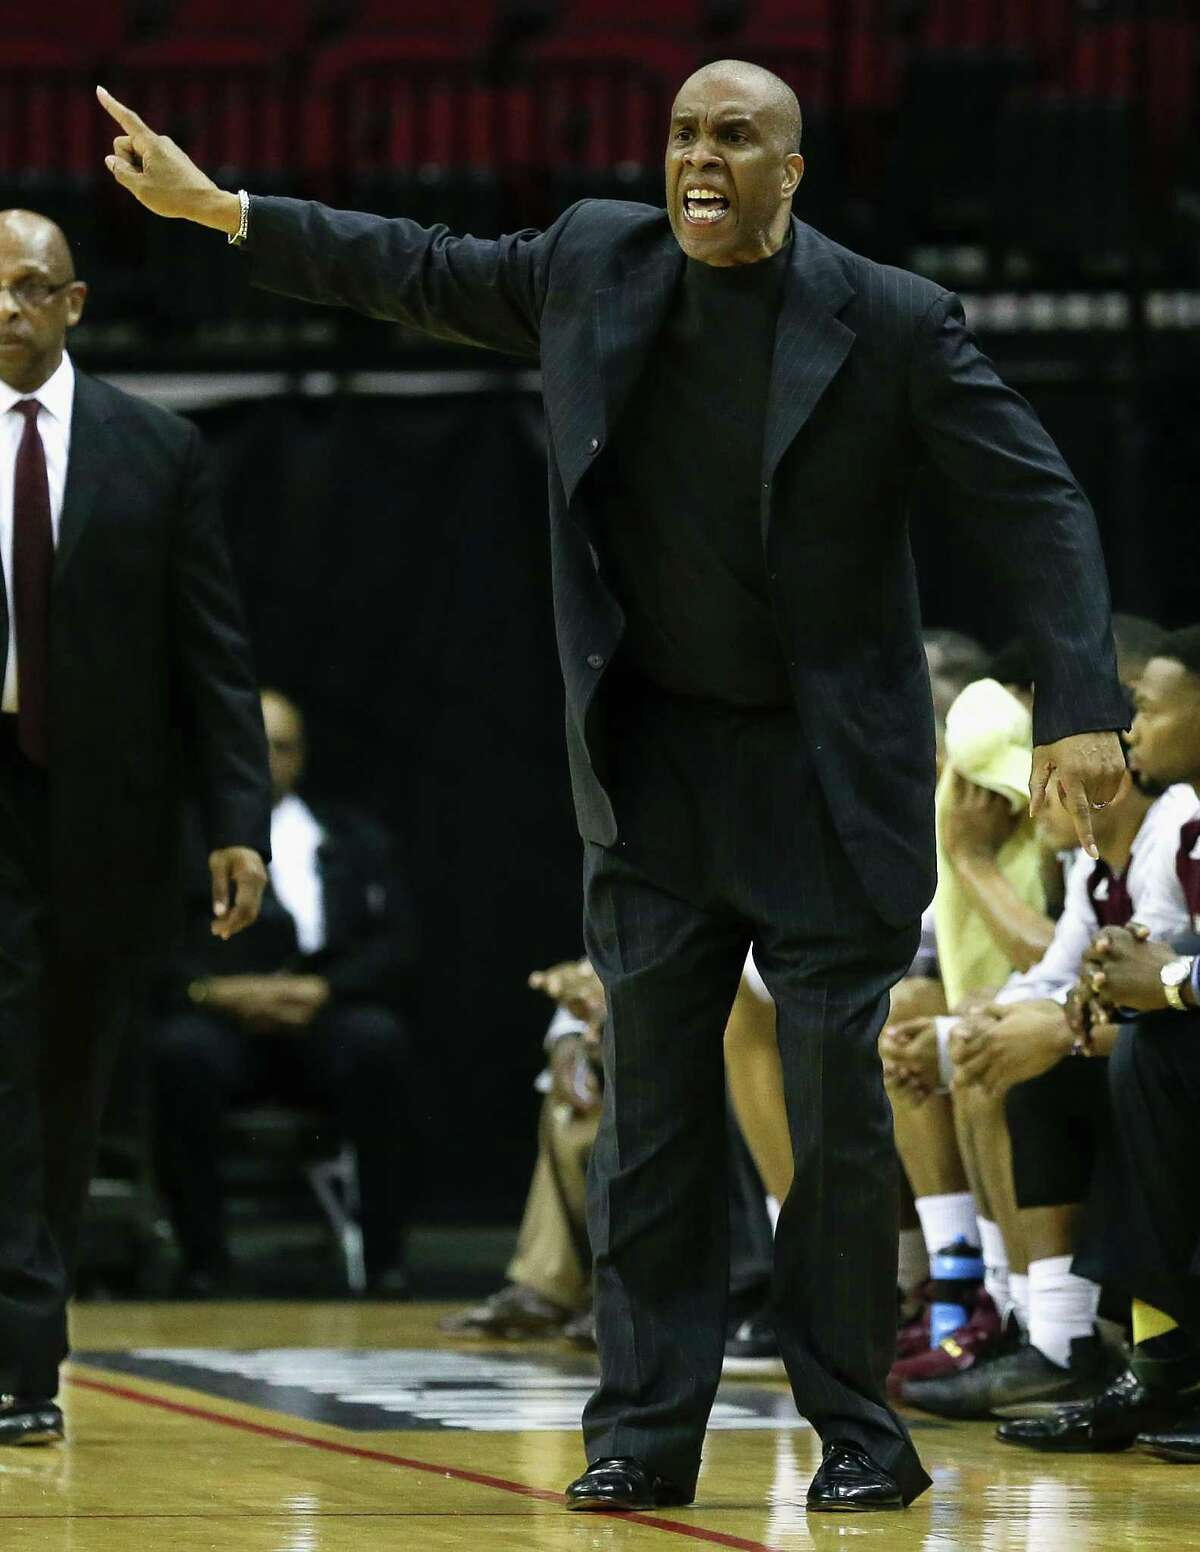 Texas Southern Tigers Mike Davis argues with the officials during the SWAC basketball tournament Friday, March 11, 2016 at the Toyota Center in Houston.